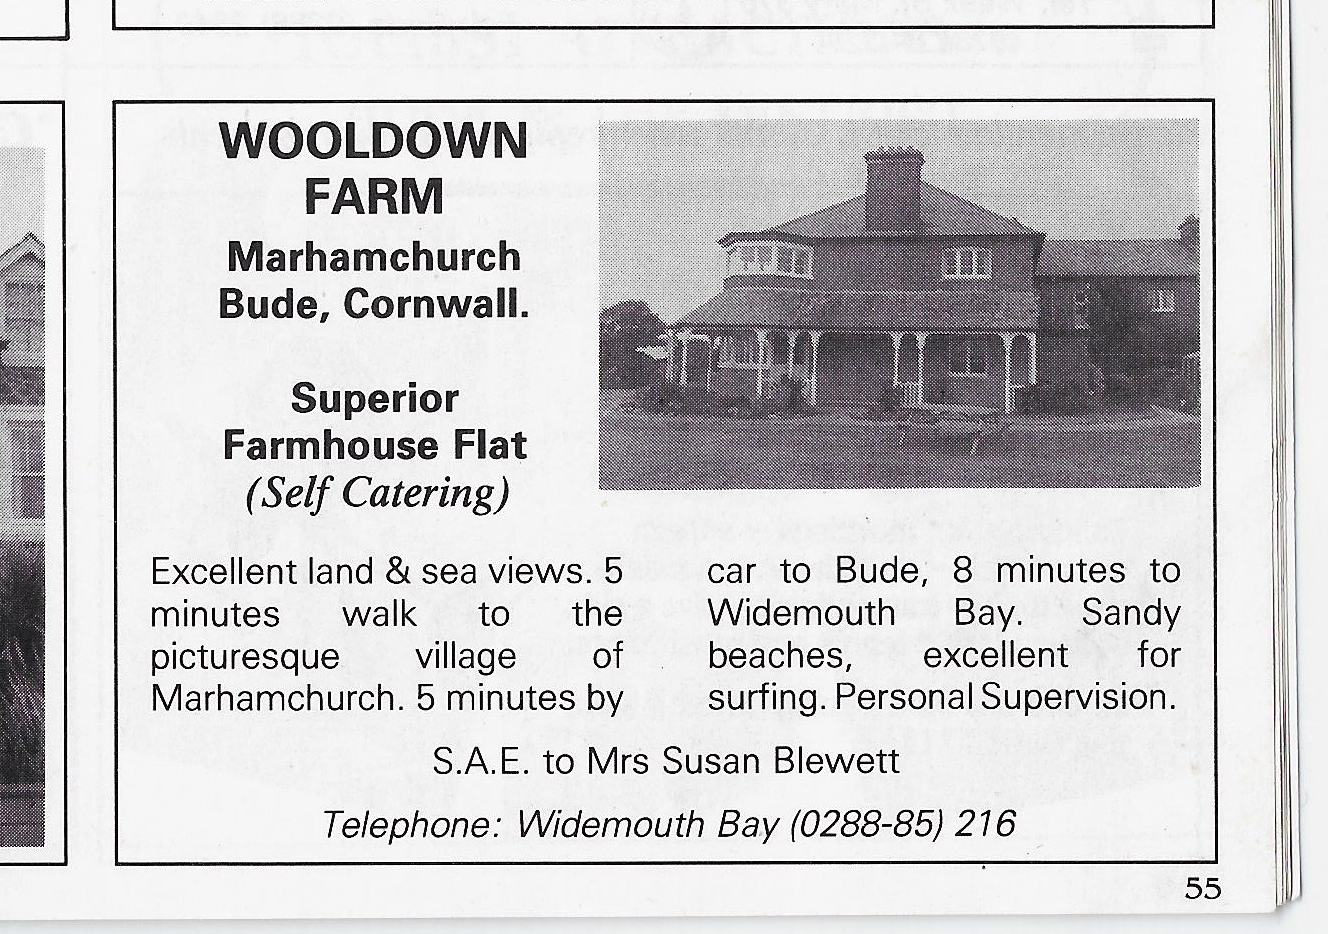 Advert in the 1987 Visit Bude Guide